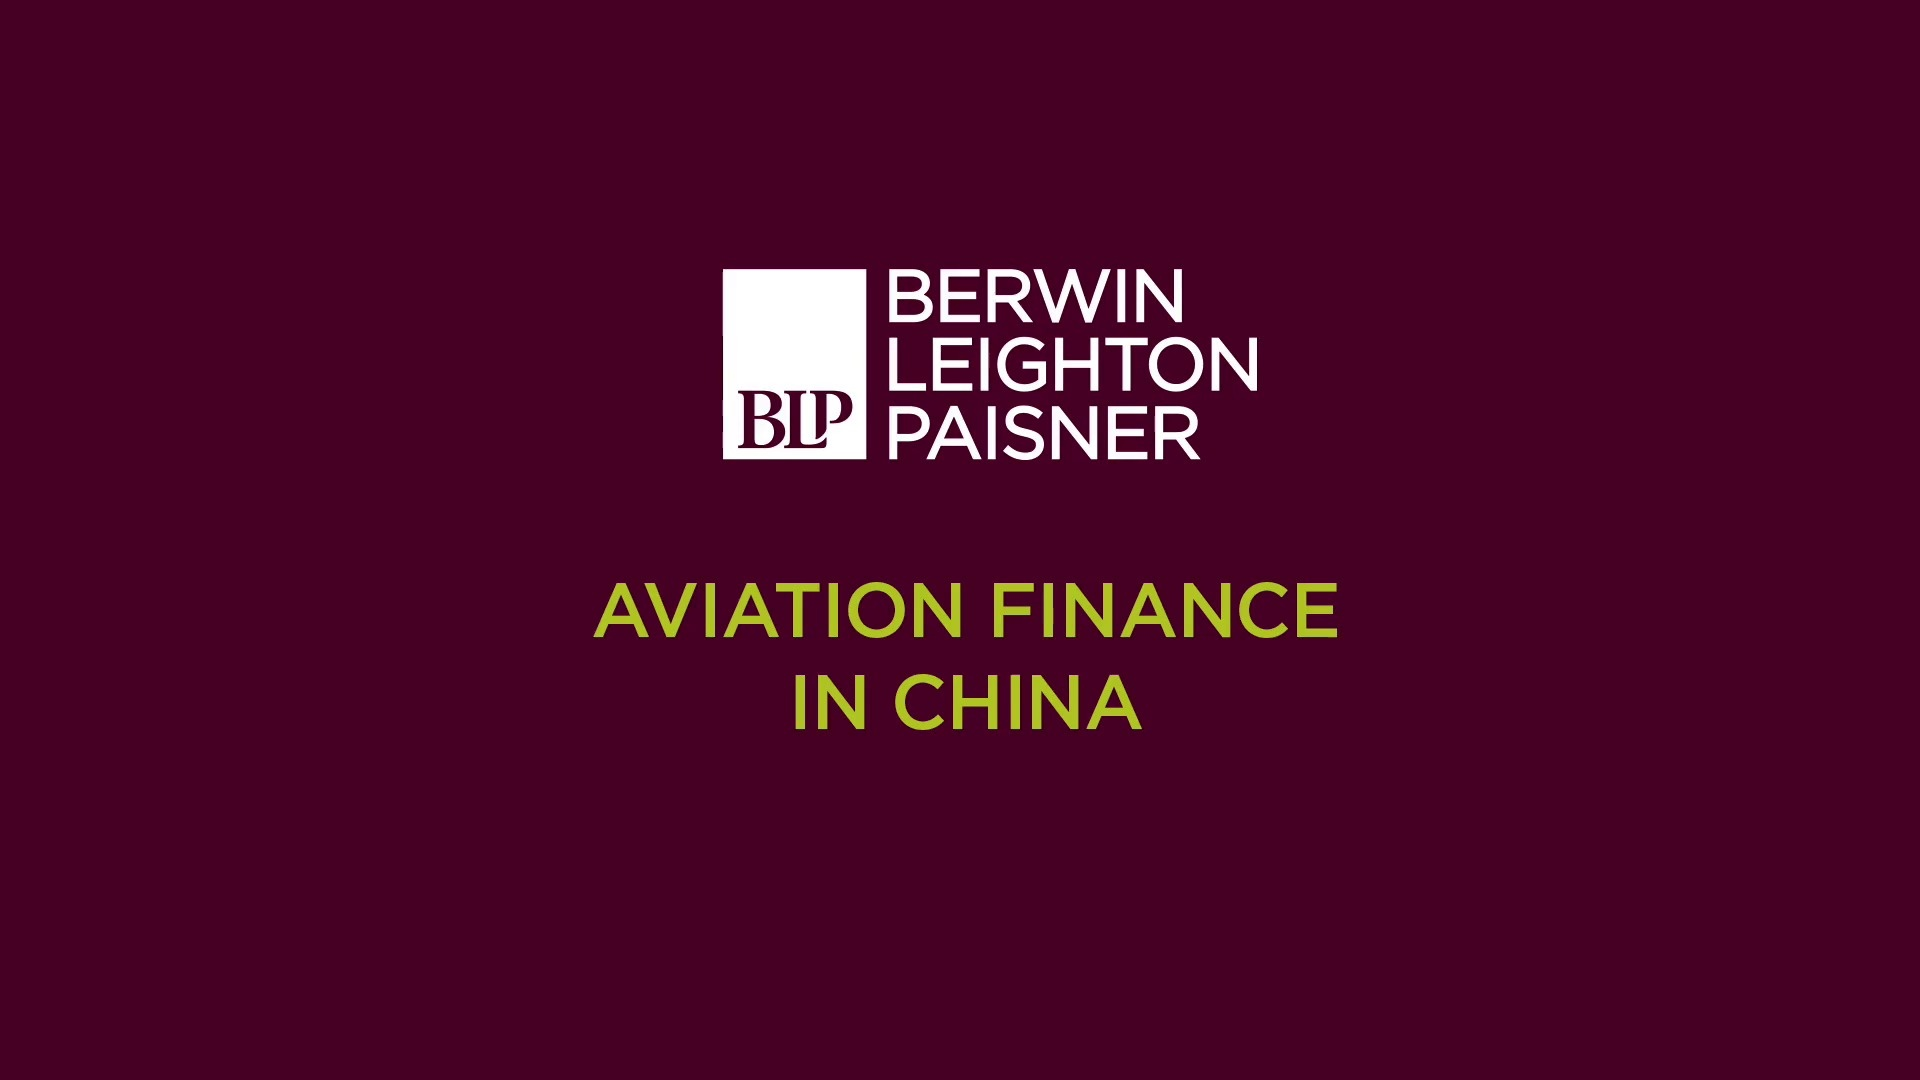 Still image from 'An update on aviation finance in China' video